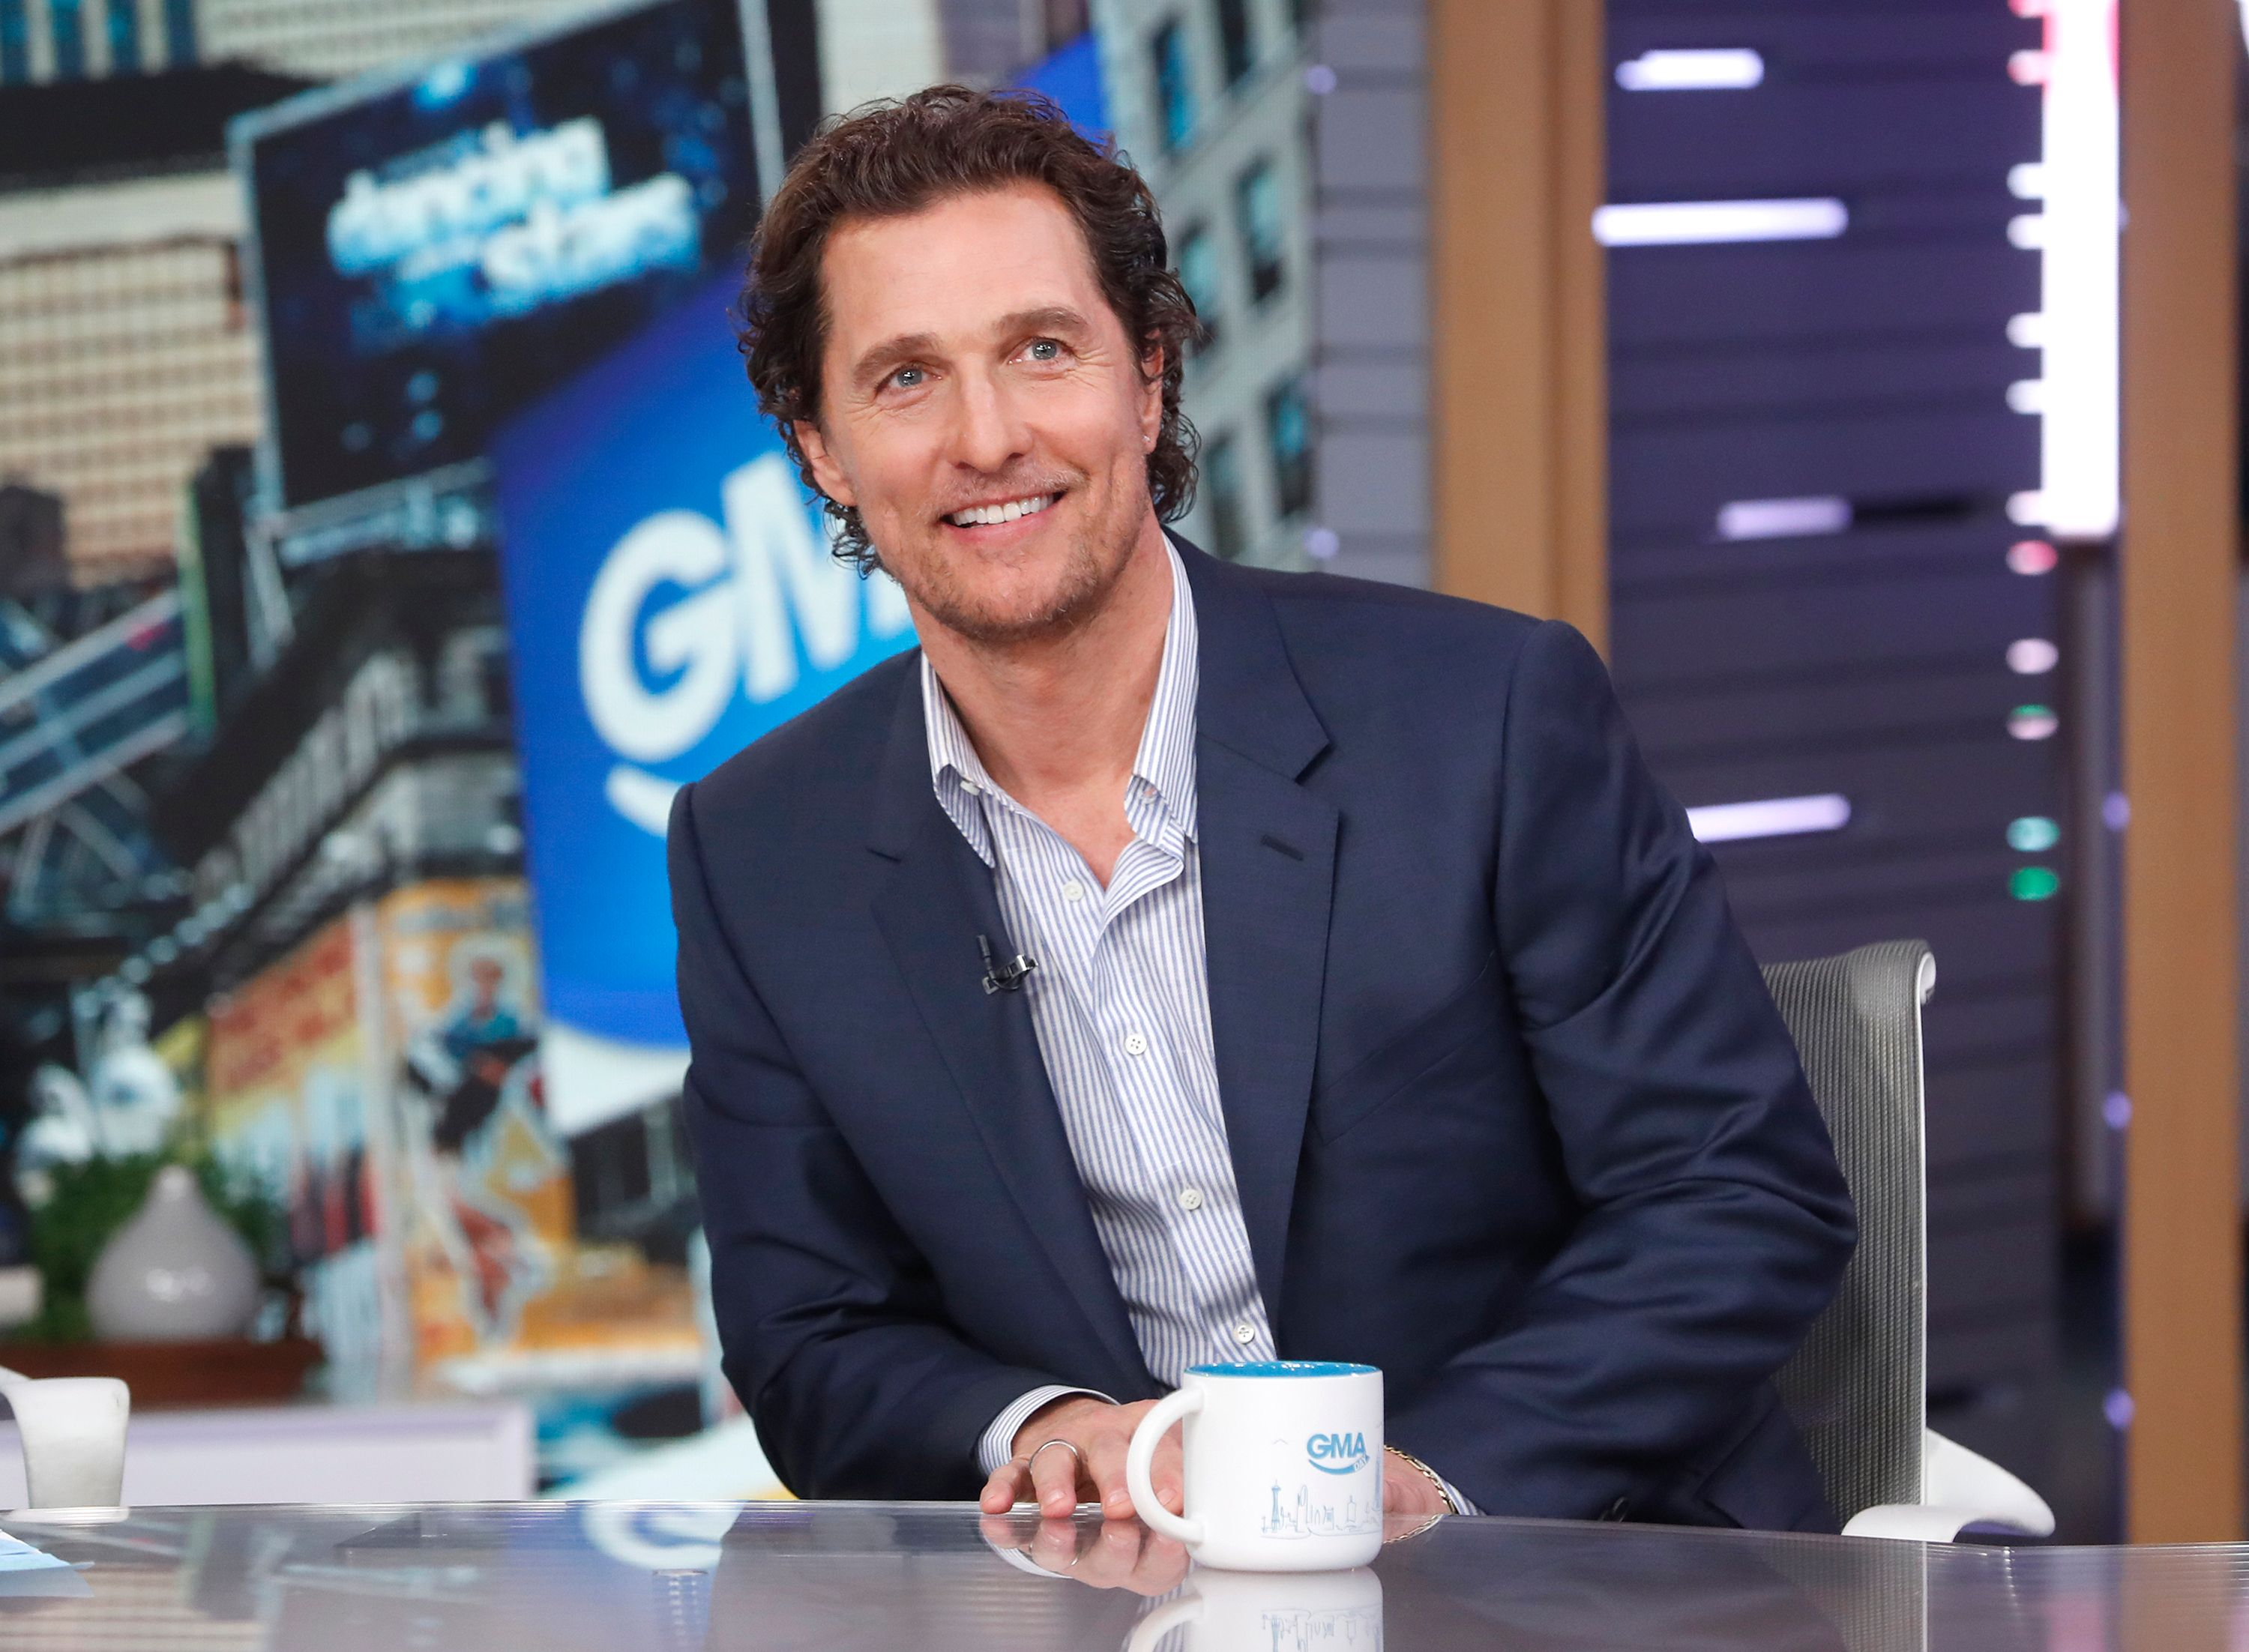 """Matthew McConaughey as a guest on """"GMA DAY,"""" Thursday January 24, 2019 